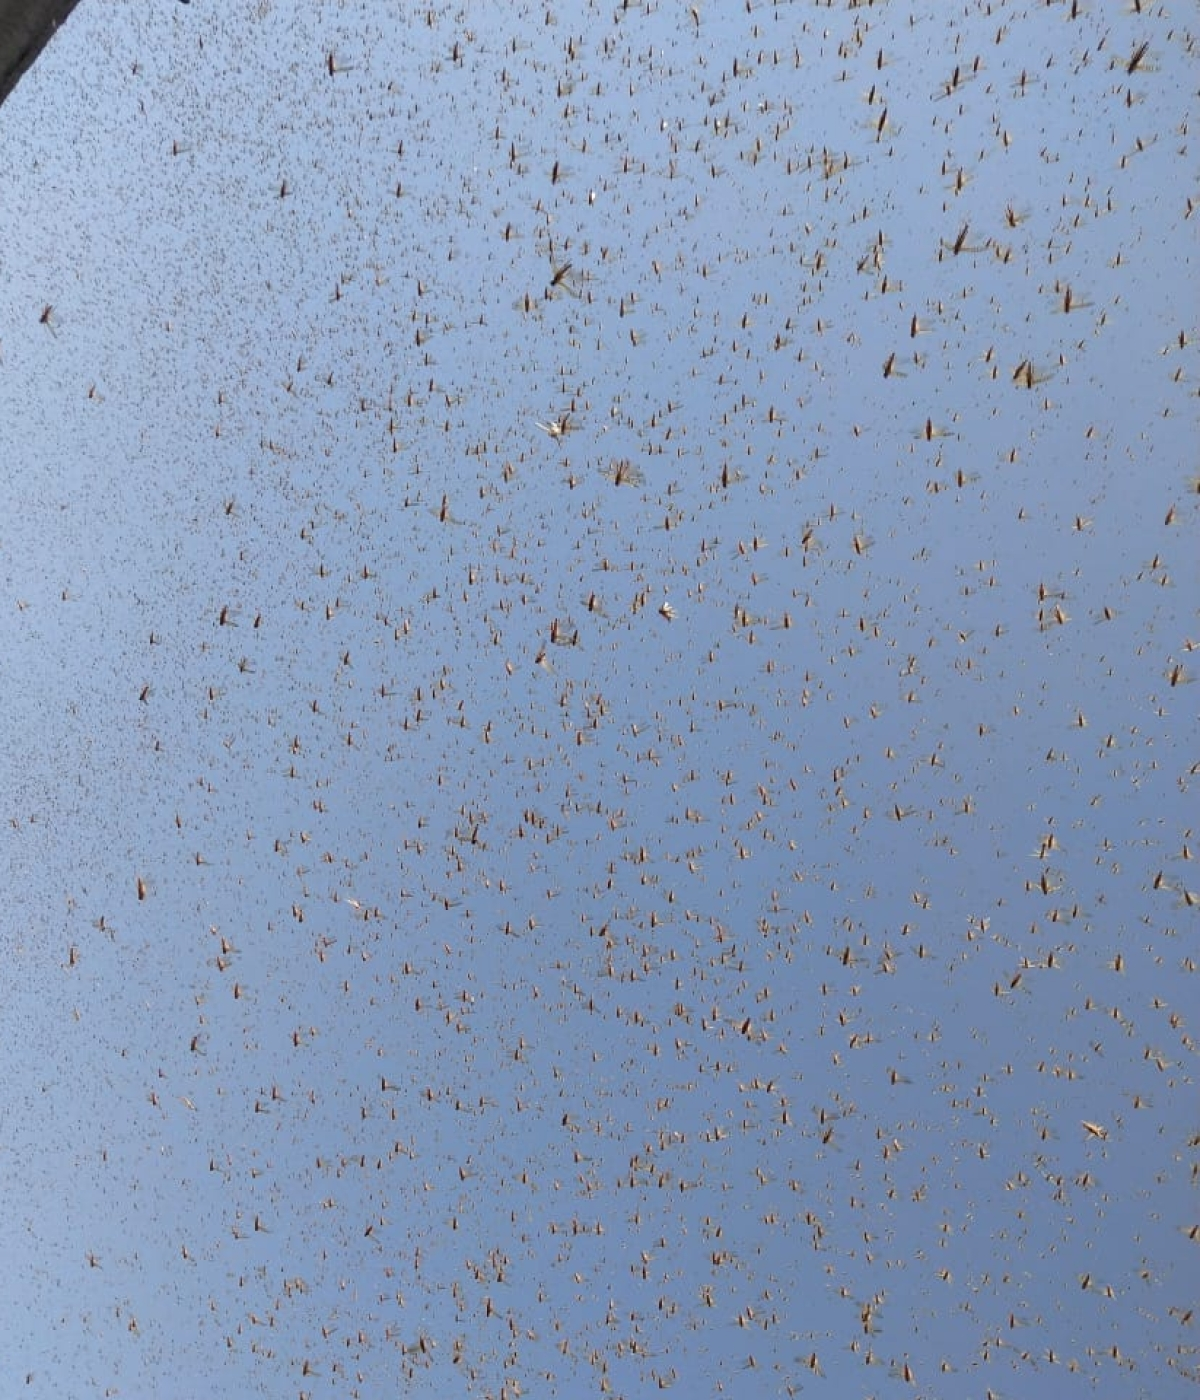 Locust swarms reach Maharashtra's Bhandara district; Uttar Pradesh, Punjab on high alert